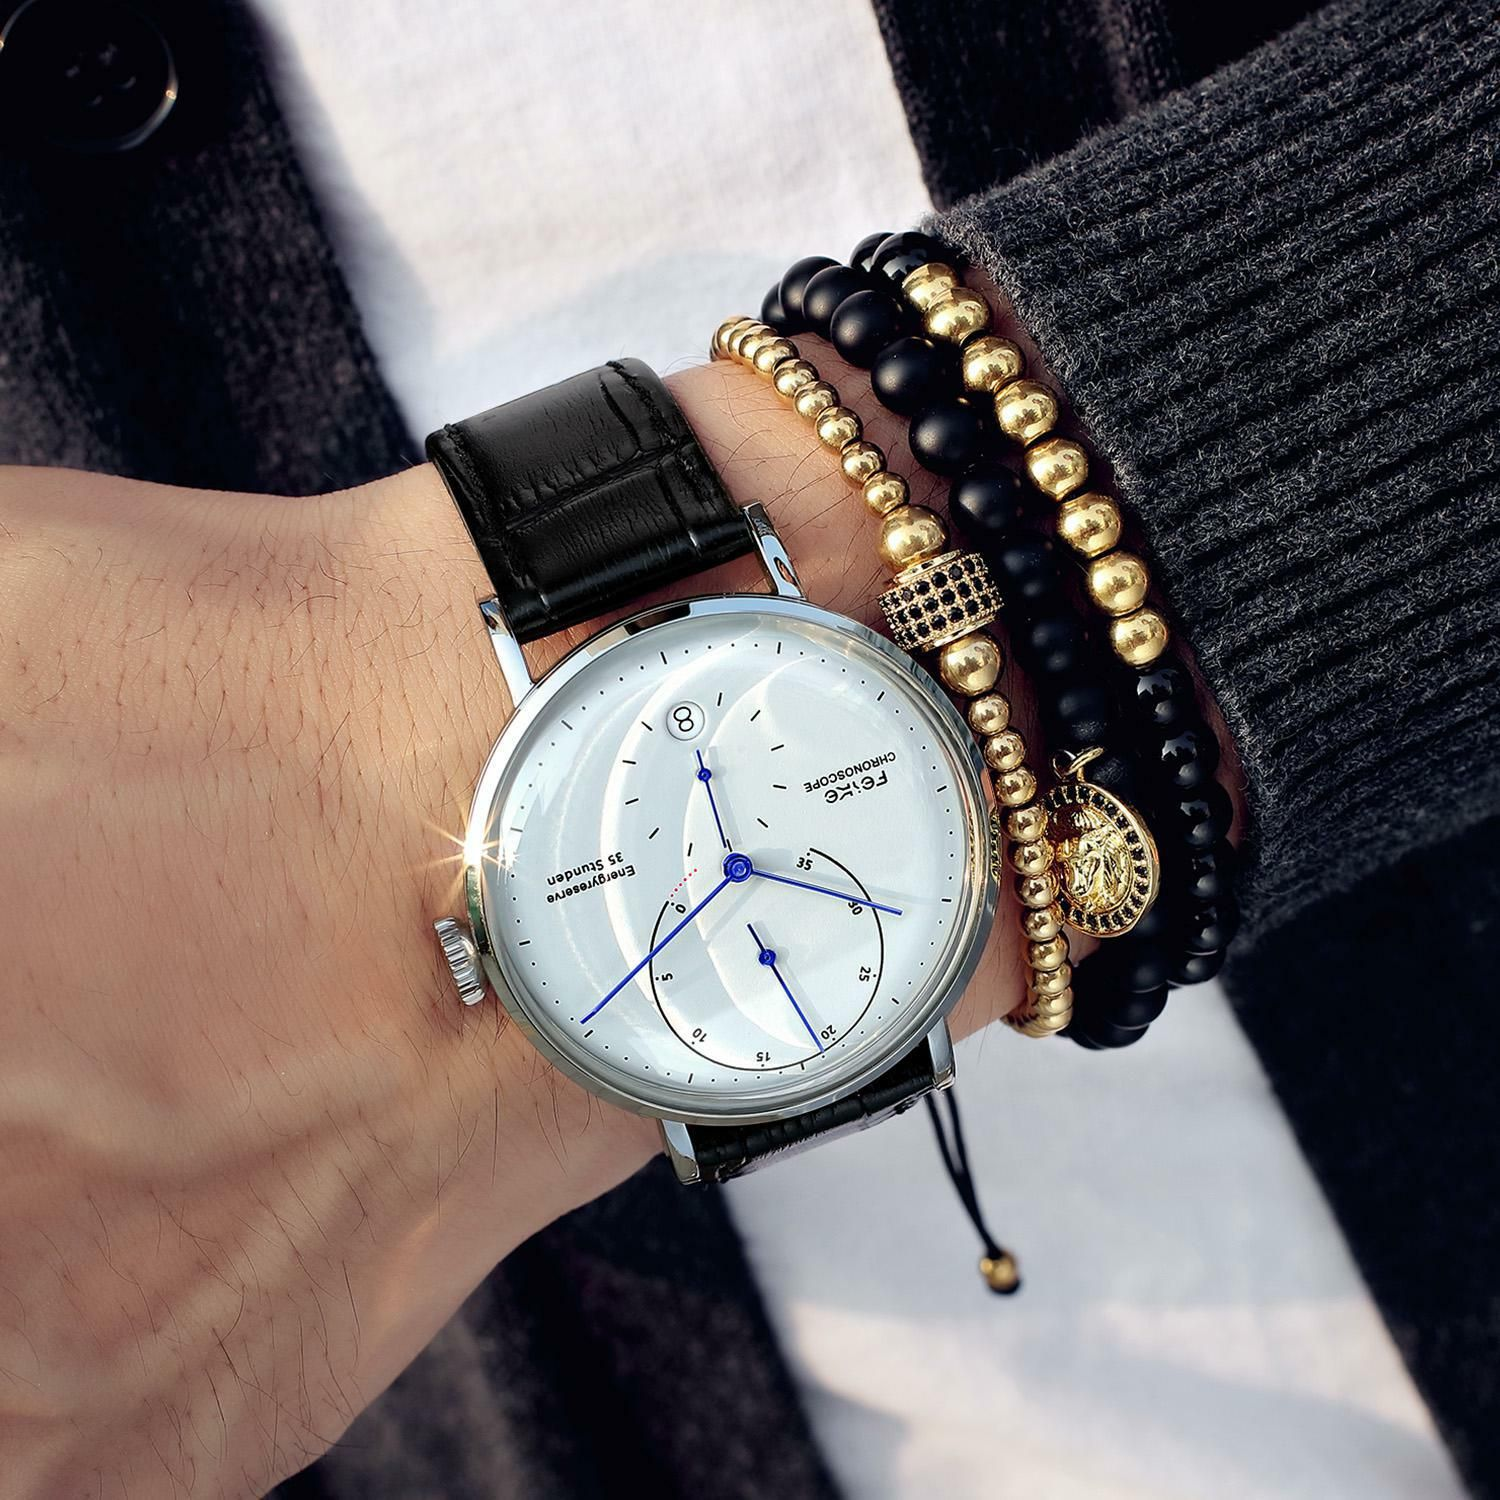 Fashion Casual Dress Watches For Men Automatic Self Wind Movement With Minimalist Bauhaus Des Luxury Watches For Men Watches For Men Automatic Watches For Men [ 1500 x 1500 Pixel ]